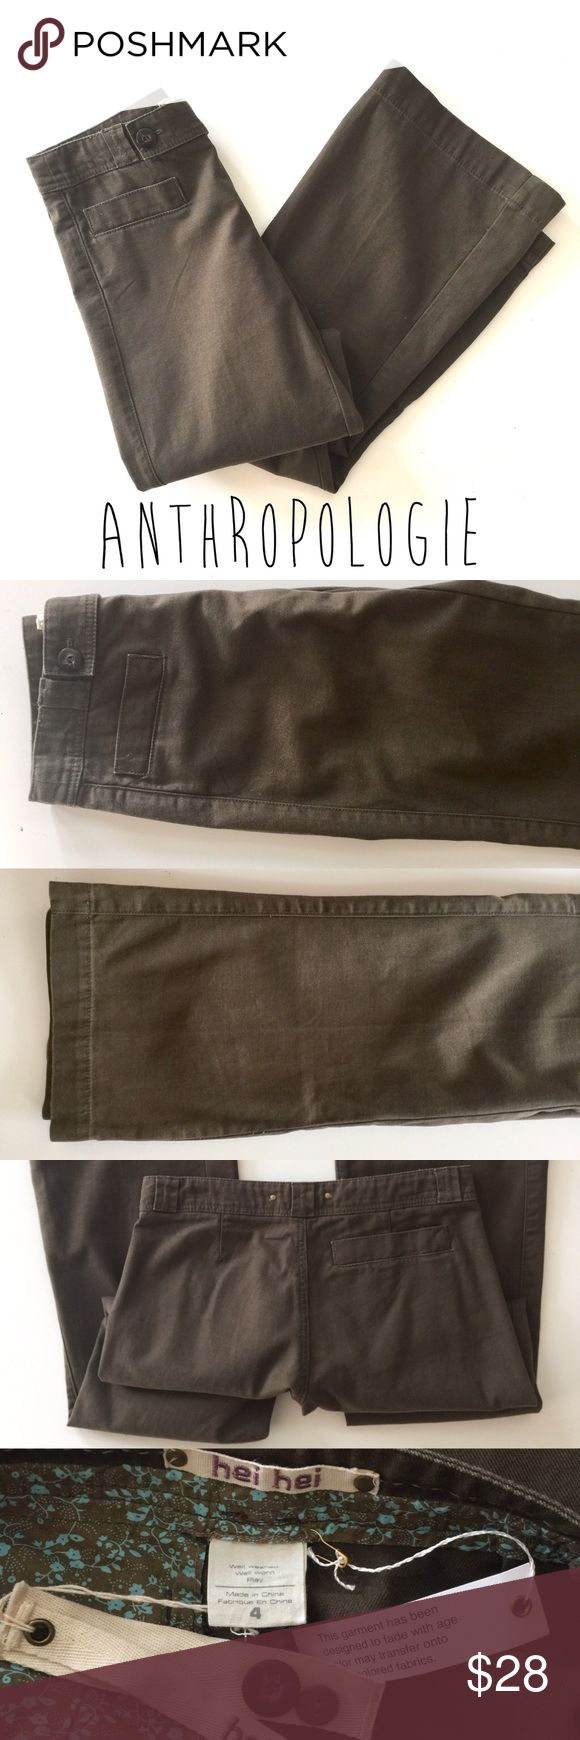 """Anthropologie Hei Hei Olive Flare Pants // Size 4 Fantastic pair of Hei Hei pants from Anthropologie. New with tags. Size 4. Flare leg fit. Fatigue green. 34"""" inseam.                                 Offers welcome! Anthropologie Pants Boot Cut & Flare"""